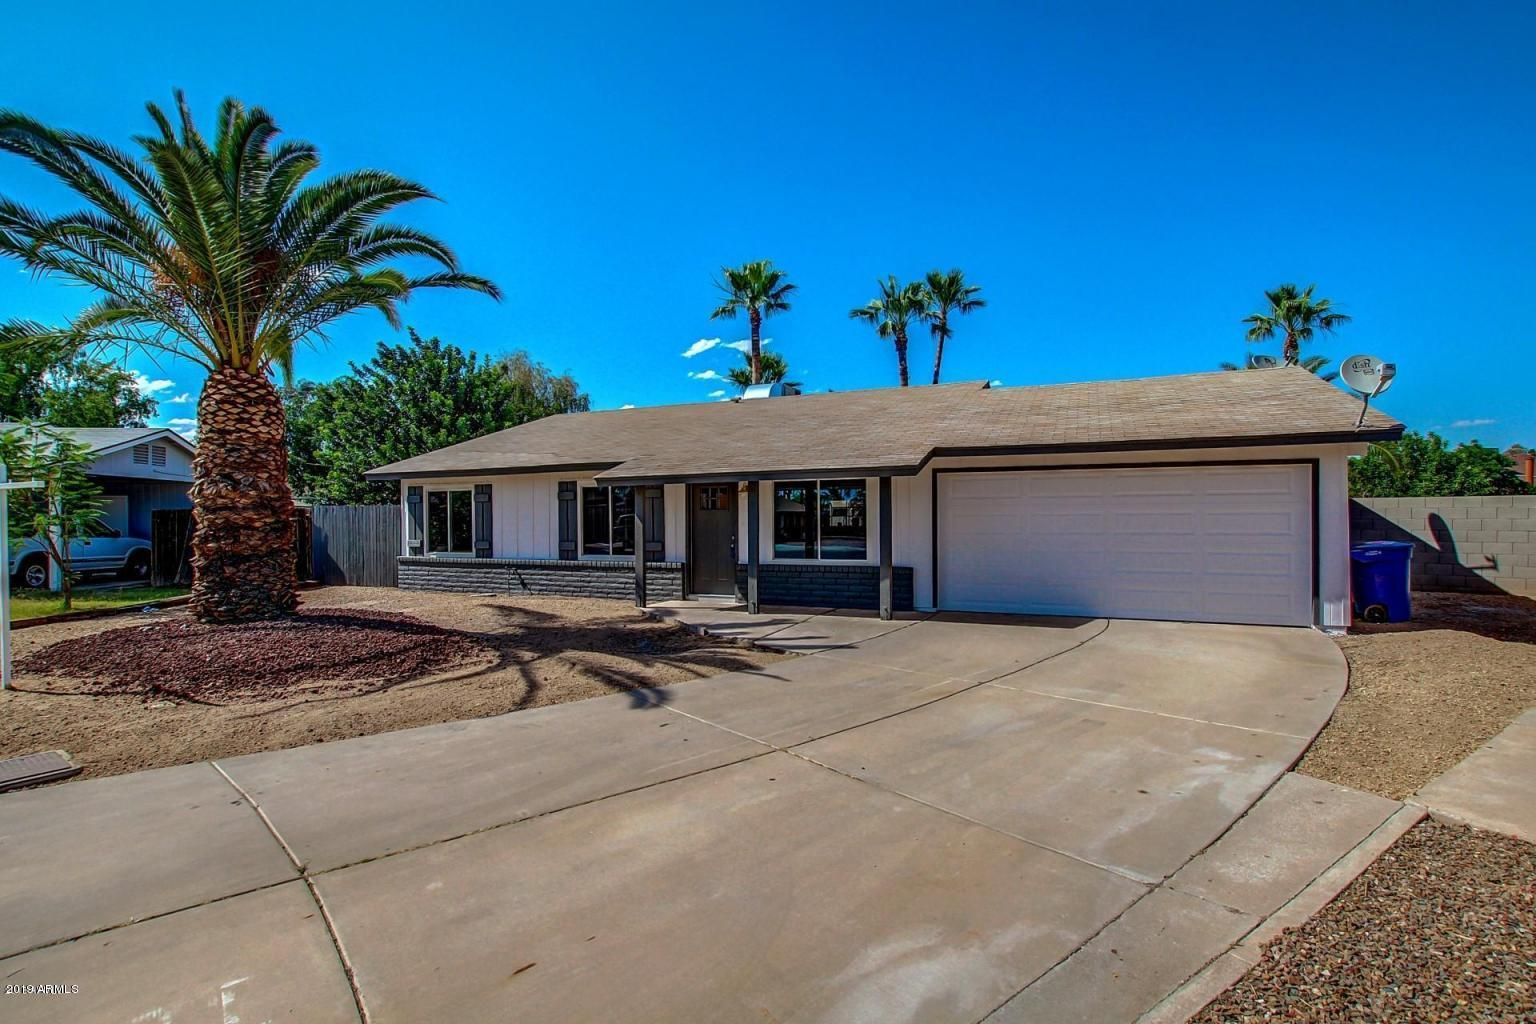 Terrific 531 N Criss St Chandler Az 85226 Mls 5907341 Coldwell Banker Download Free Architecture Designs Scobabritishbridgeorg